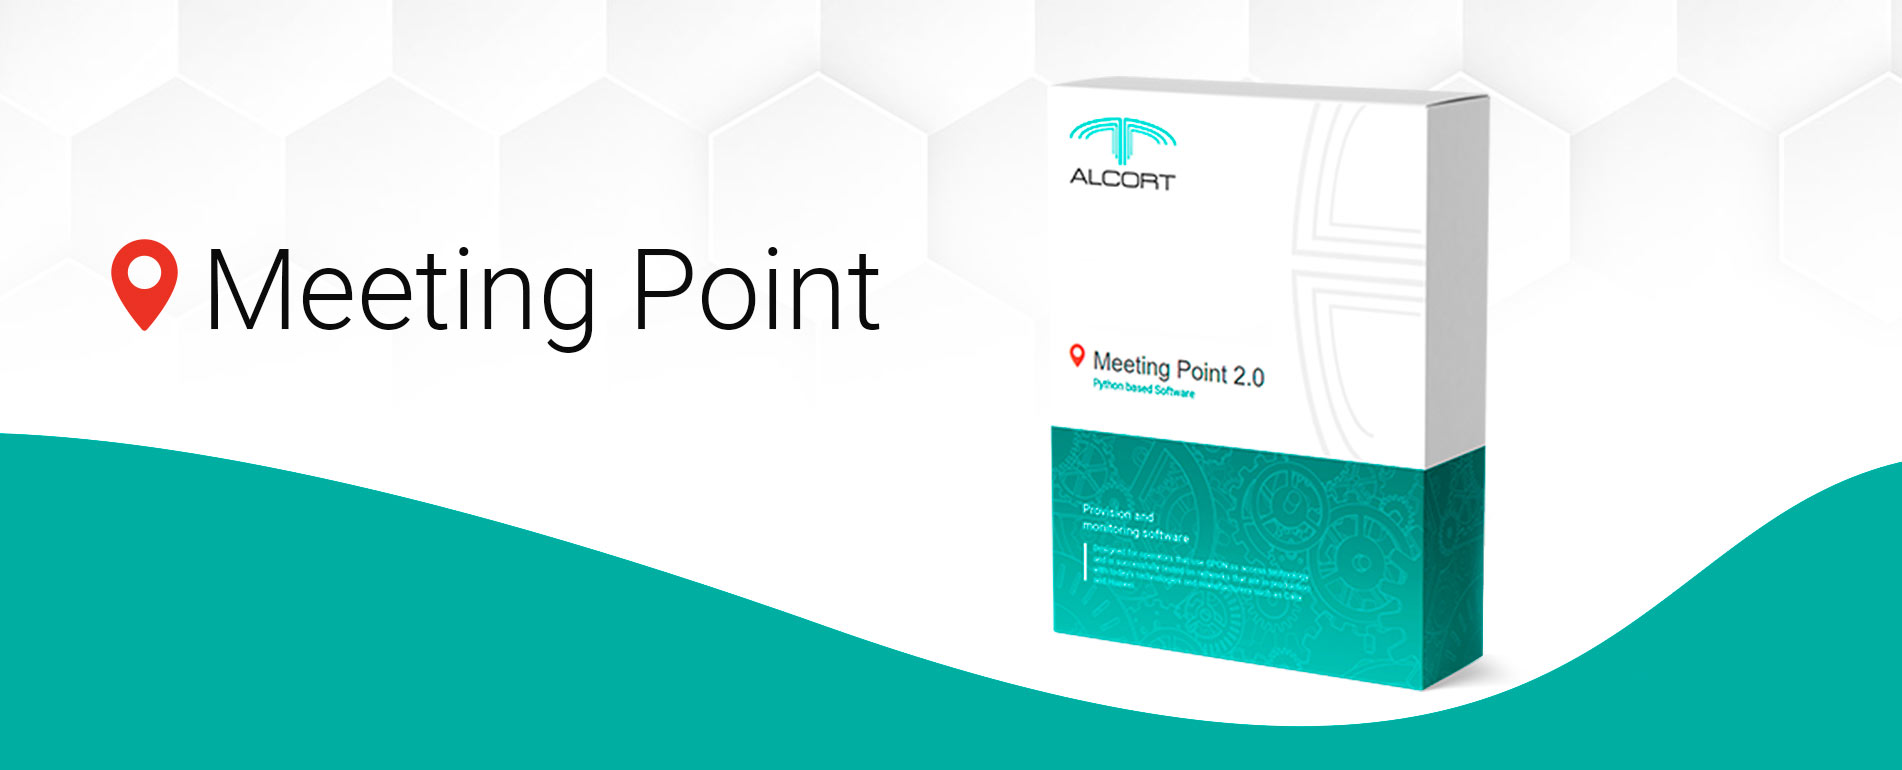 Imagen del producto Meeting Point